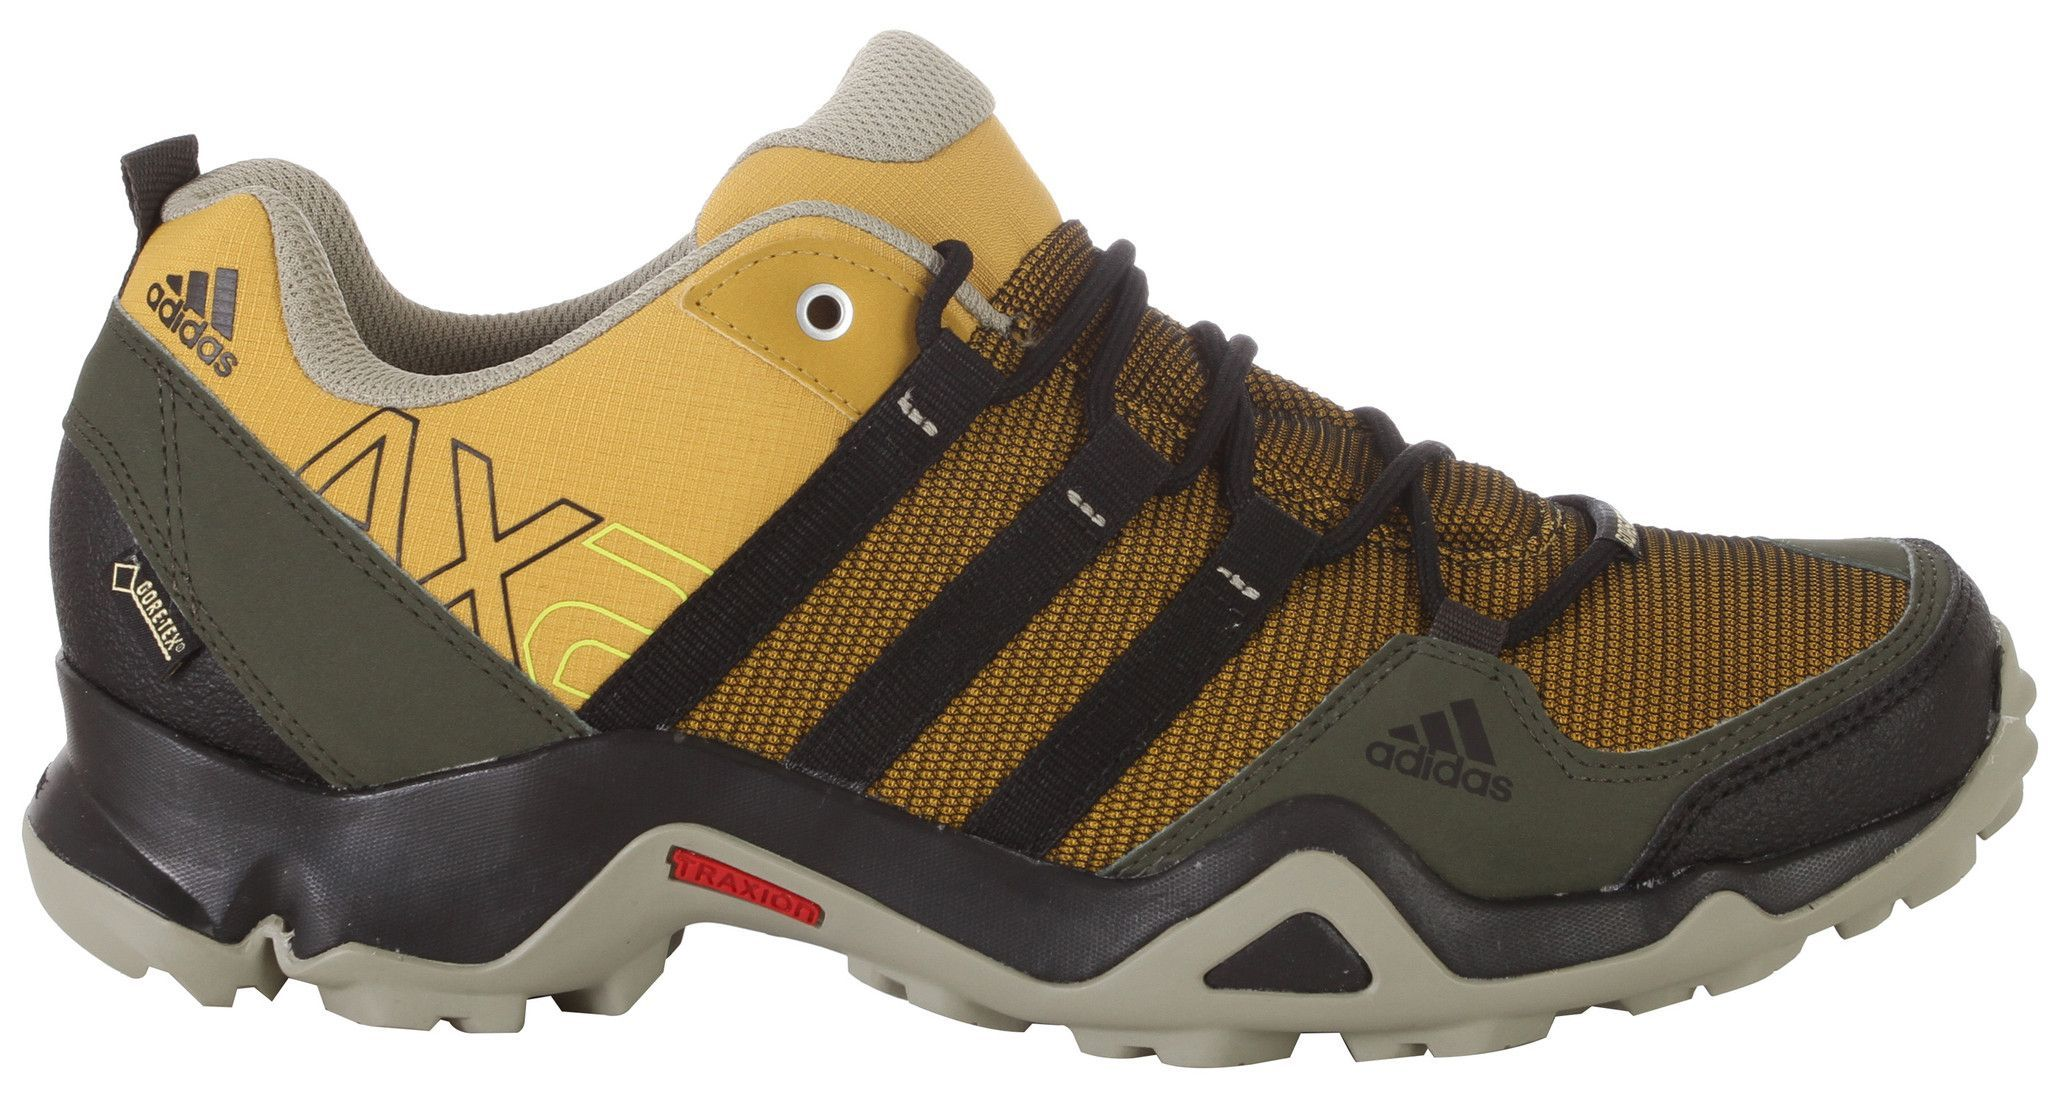 Adidas ax2 gtx hiking shoes mens with images hiking